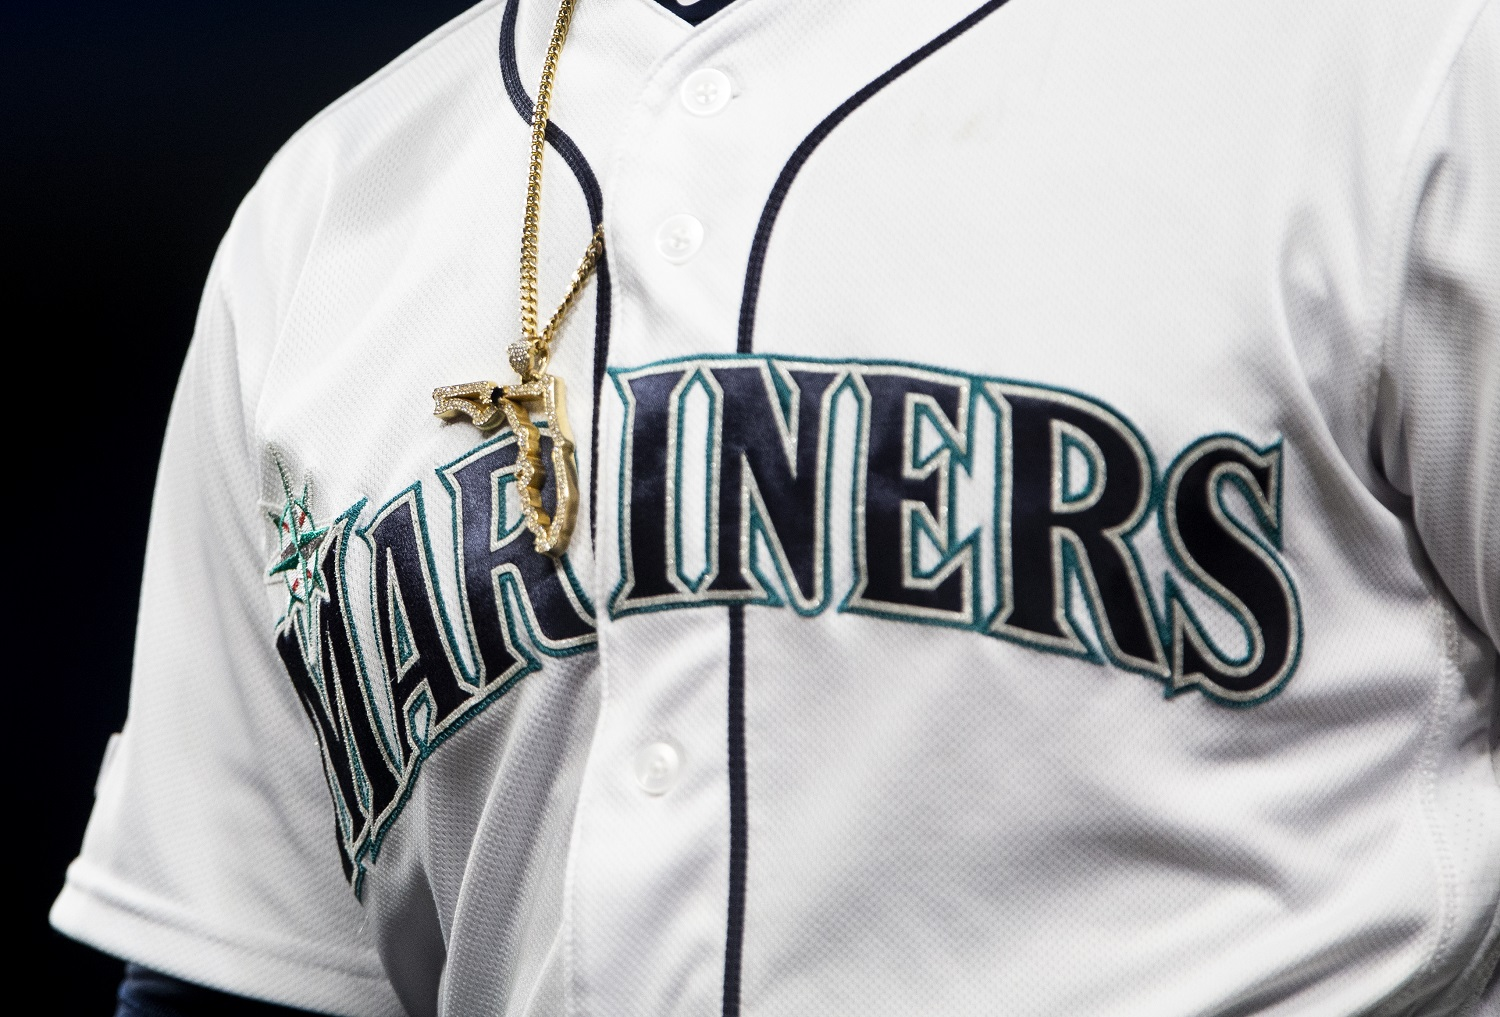 The Seattle Mariners, run my Kevin Mather, are looking for their first trip to the MLB playoffs since 2001